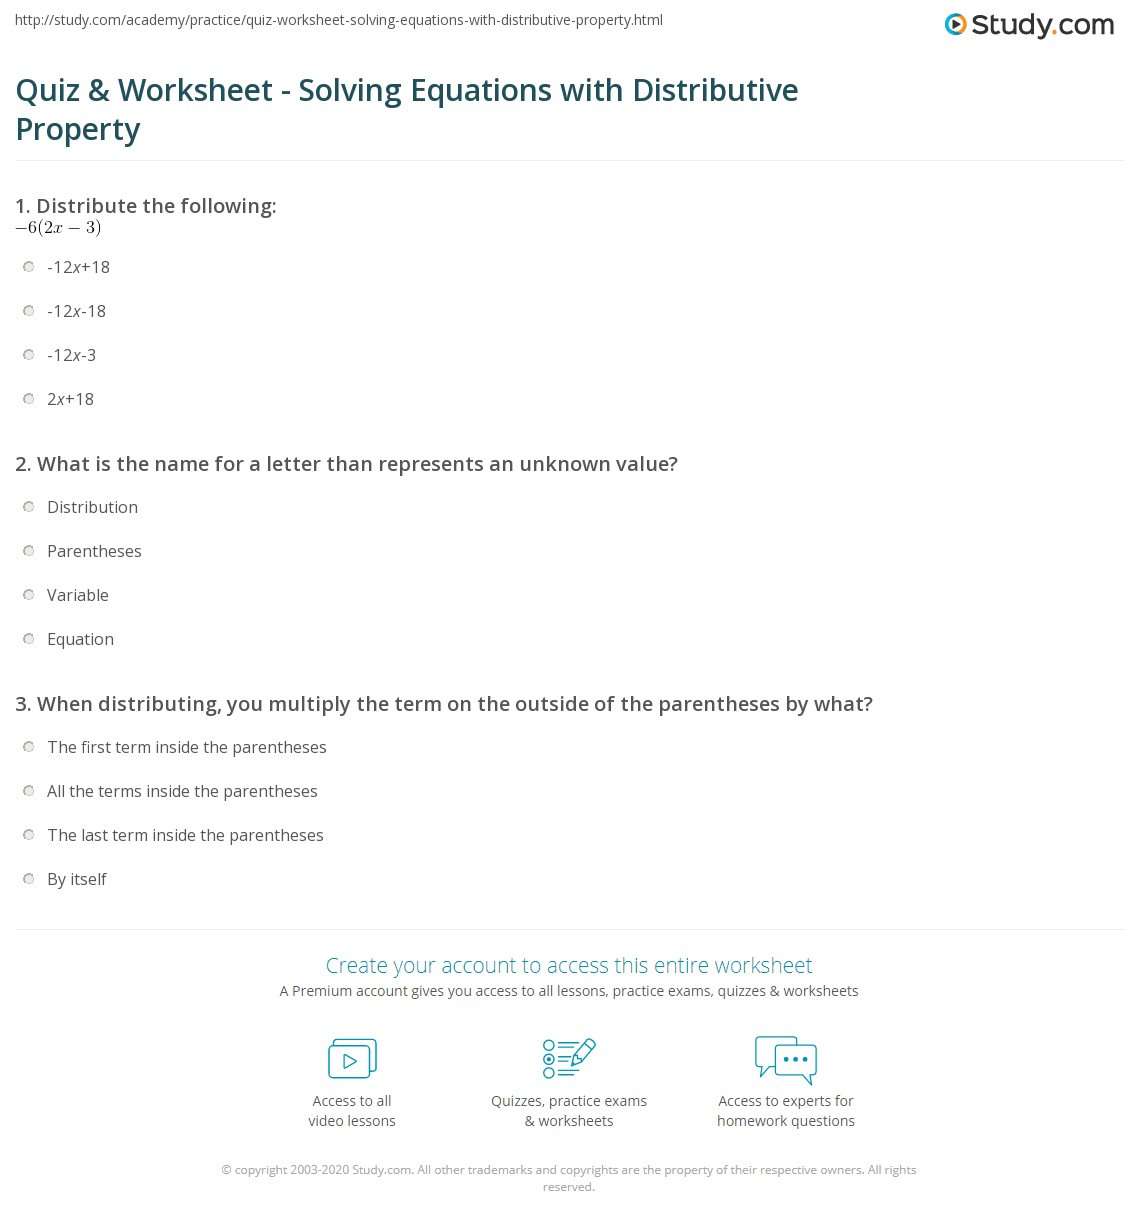 Worksheet Solving Equations With Distributive Property